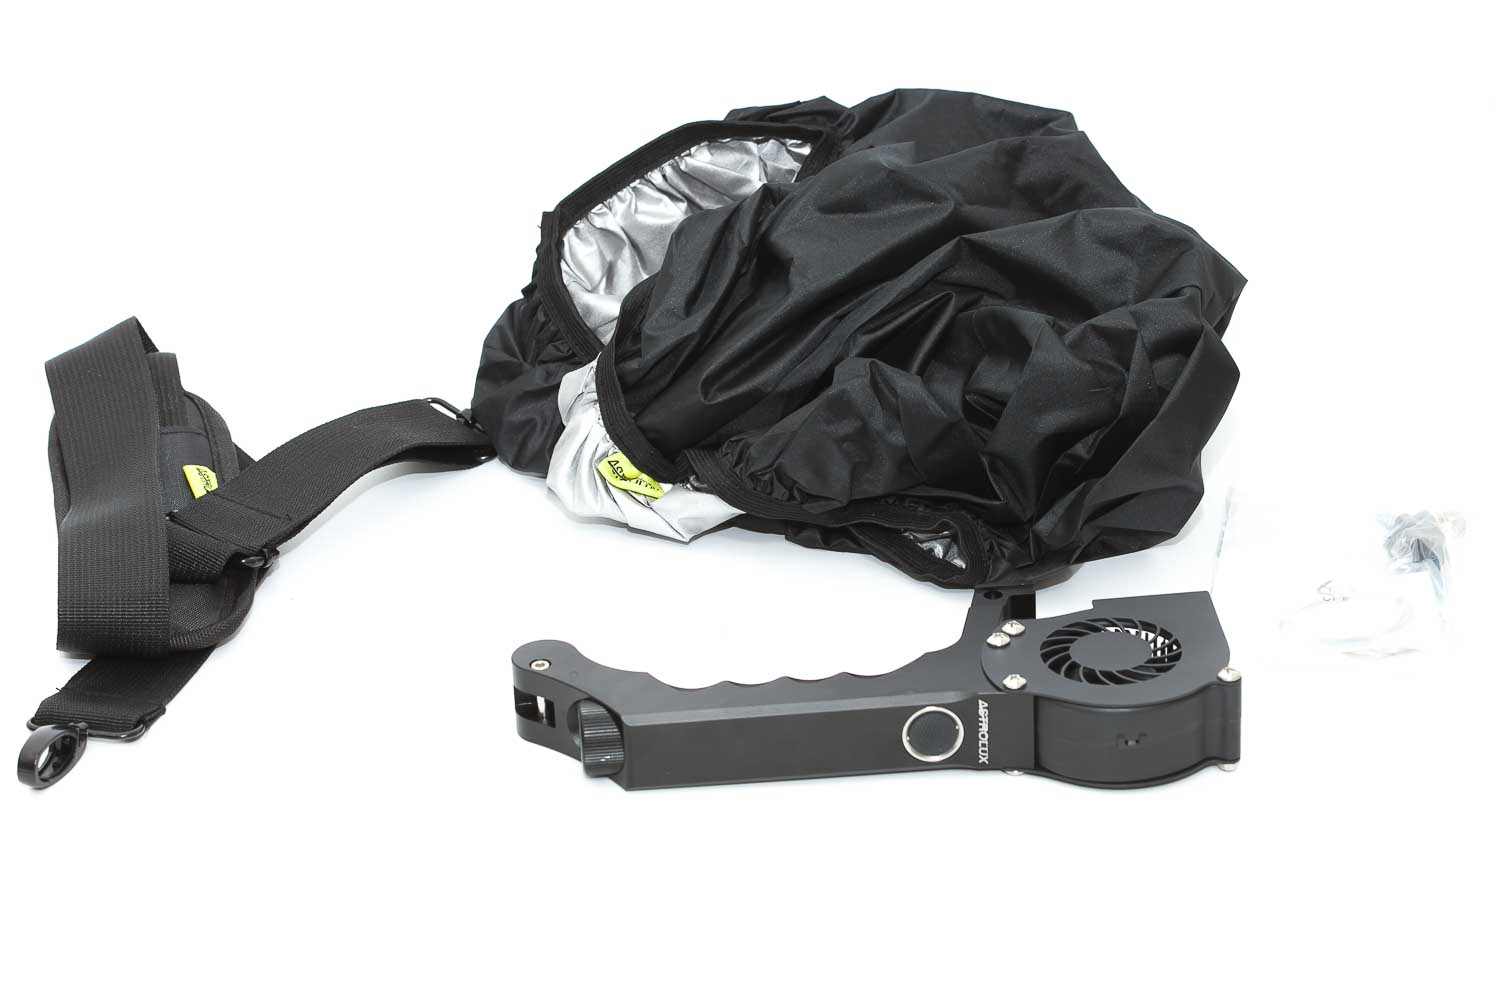 Astrolux MF05 bag cover and handle